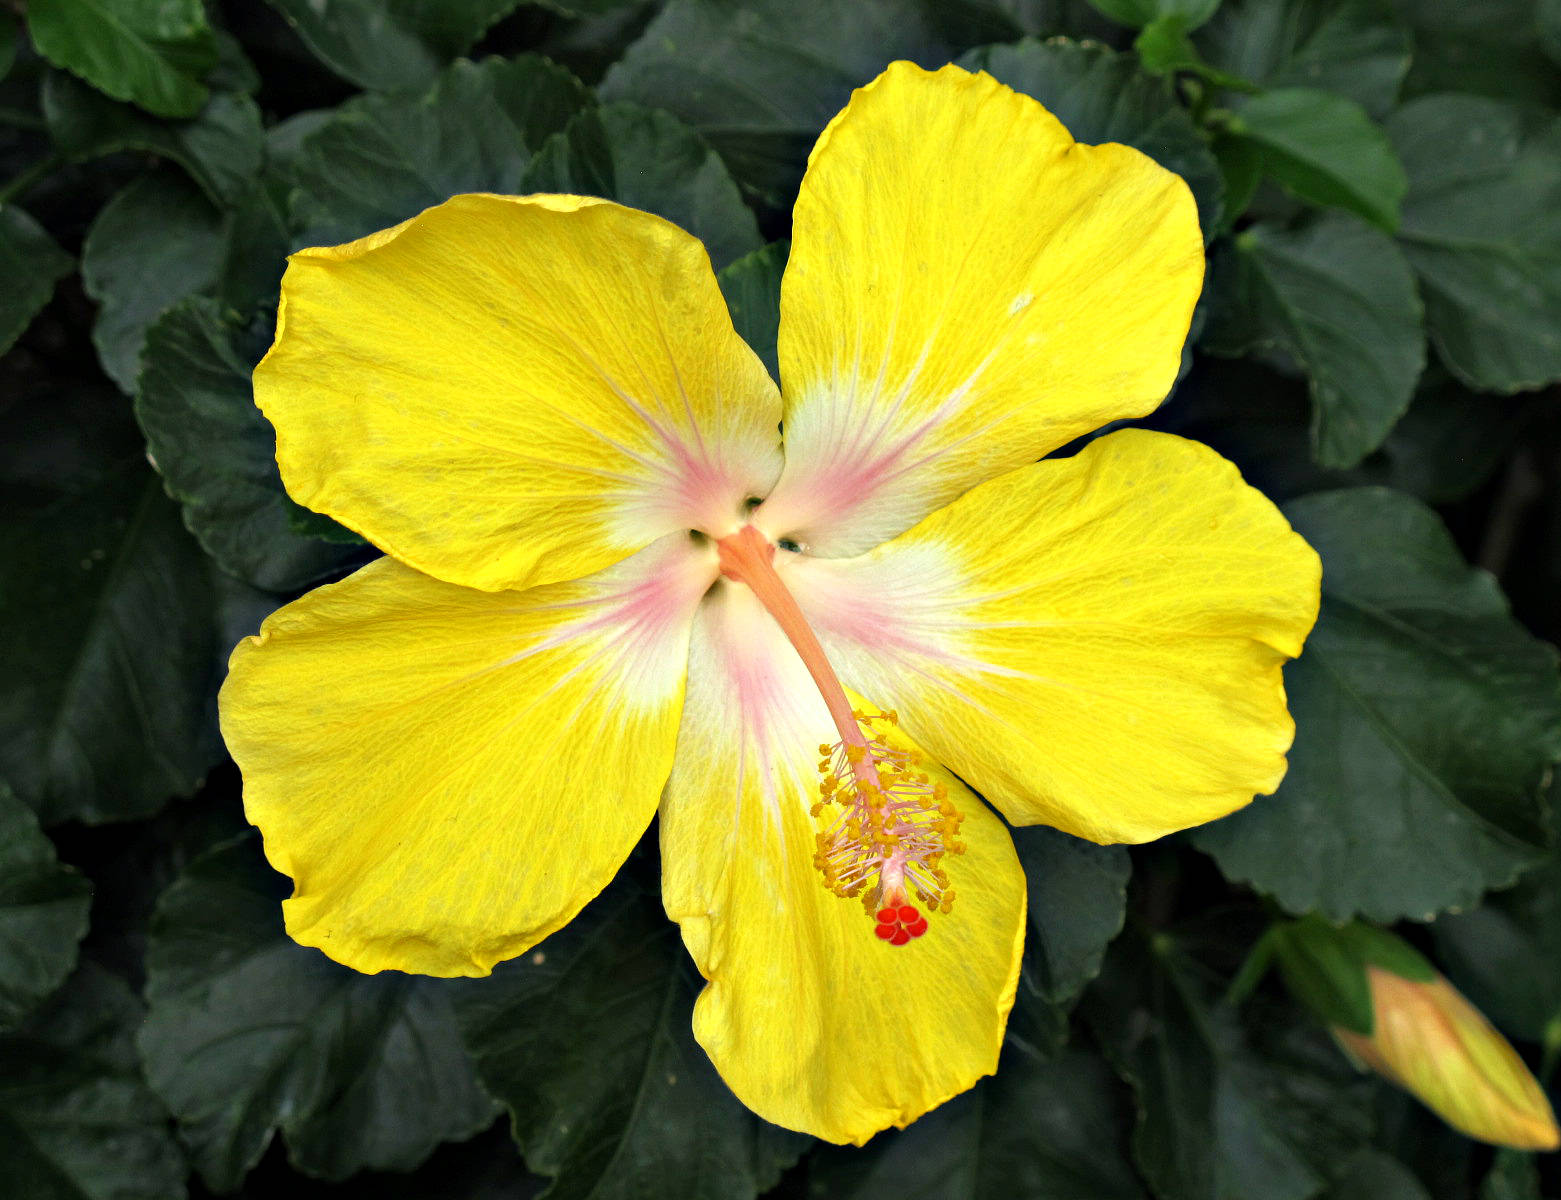 Yellow hibiscus state flower of hawaii yellow hibiscus longwood gardens photograph by roy kelley roy and dolores kelley photographs izmirmasajfo Choice Image